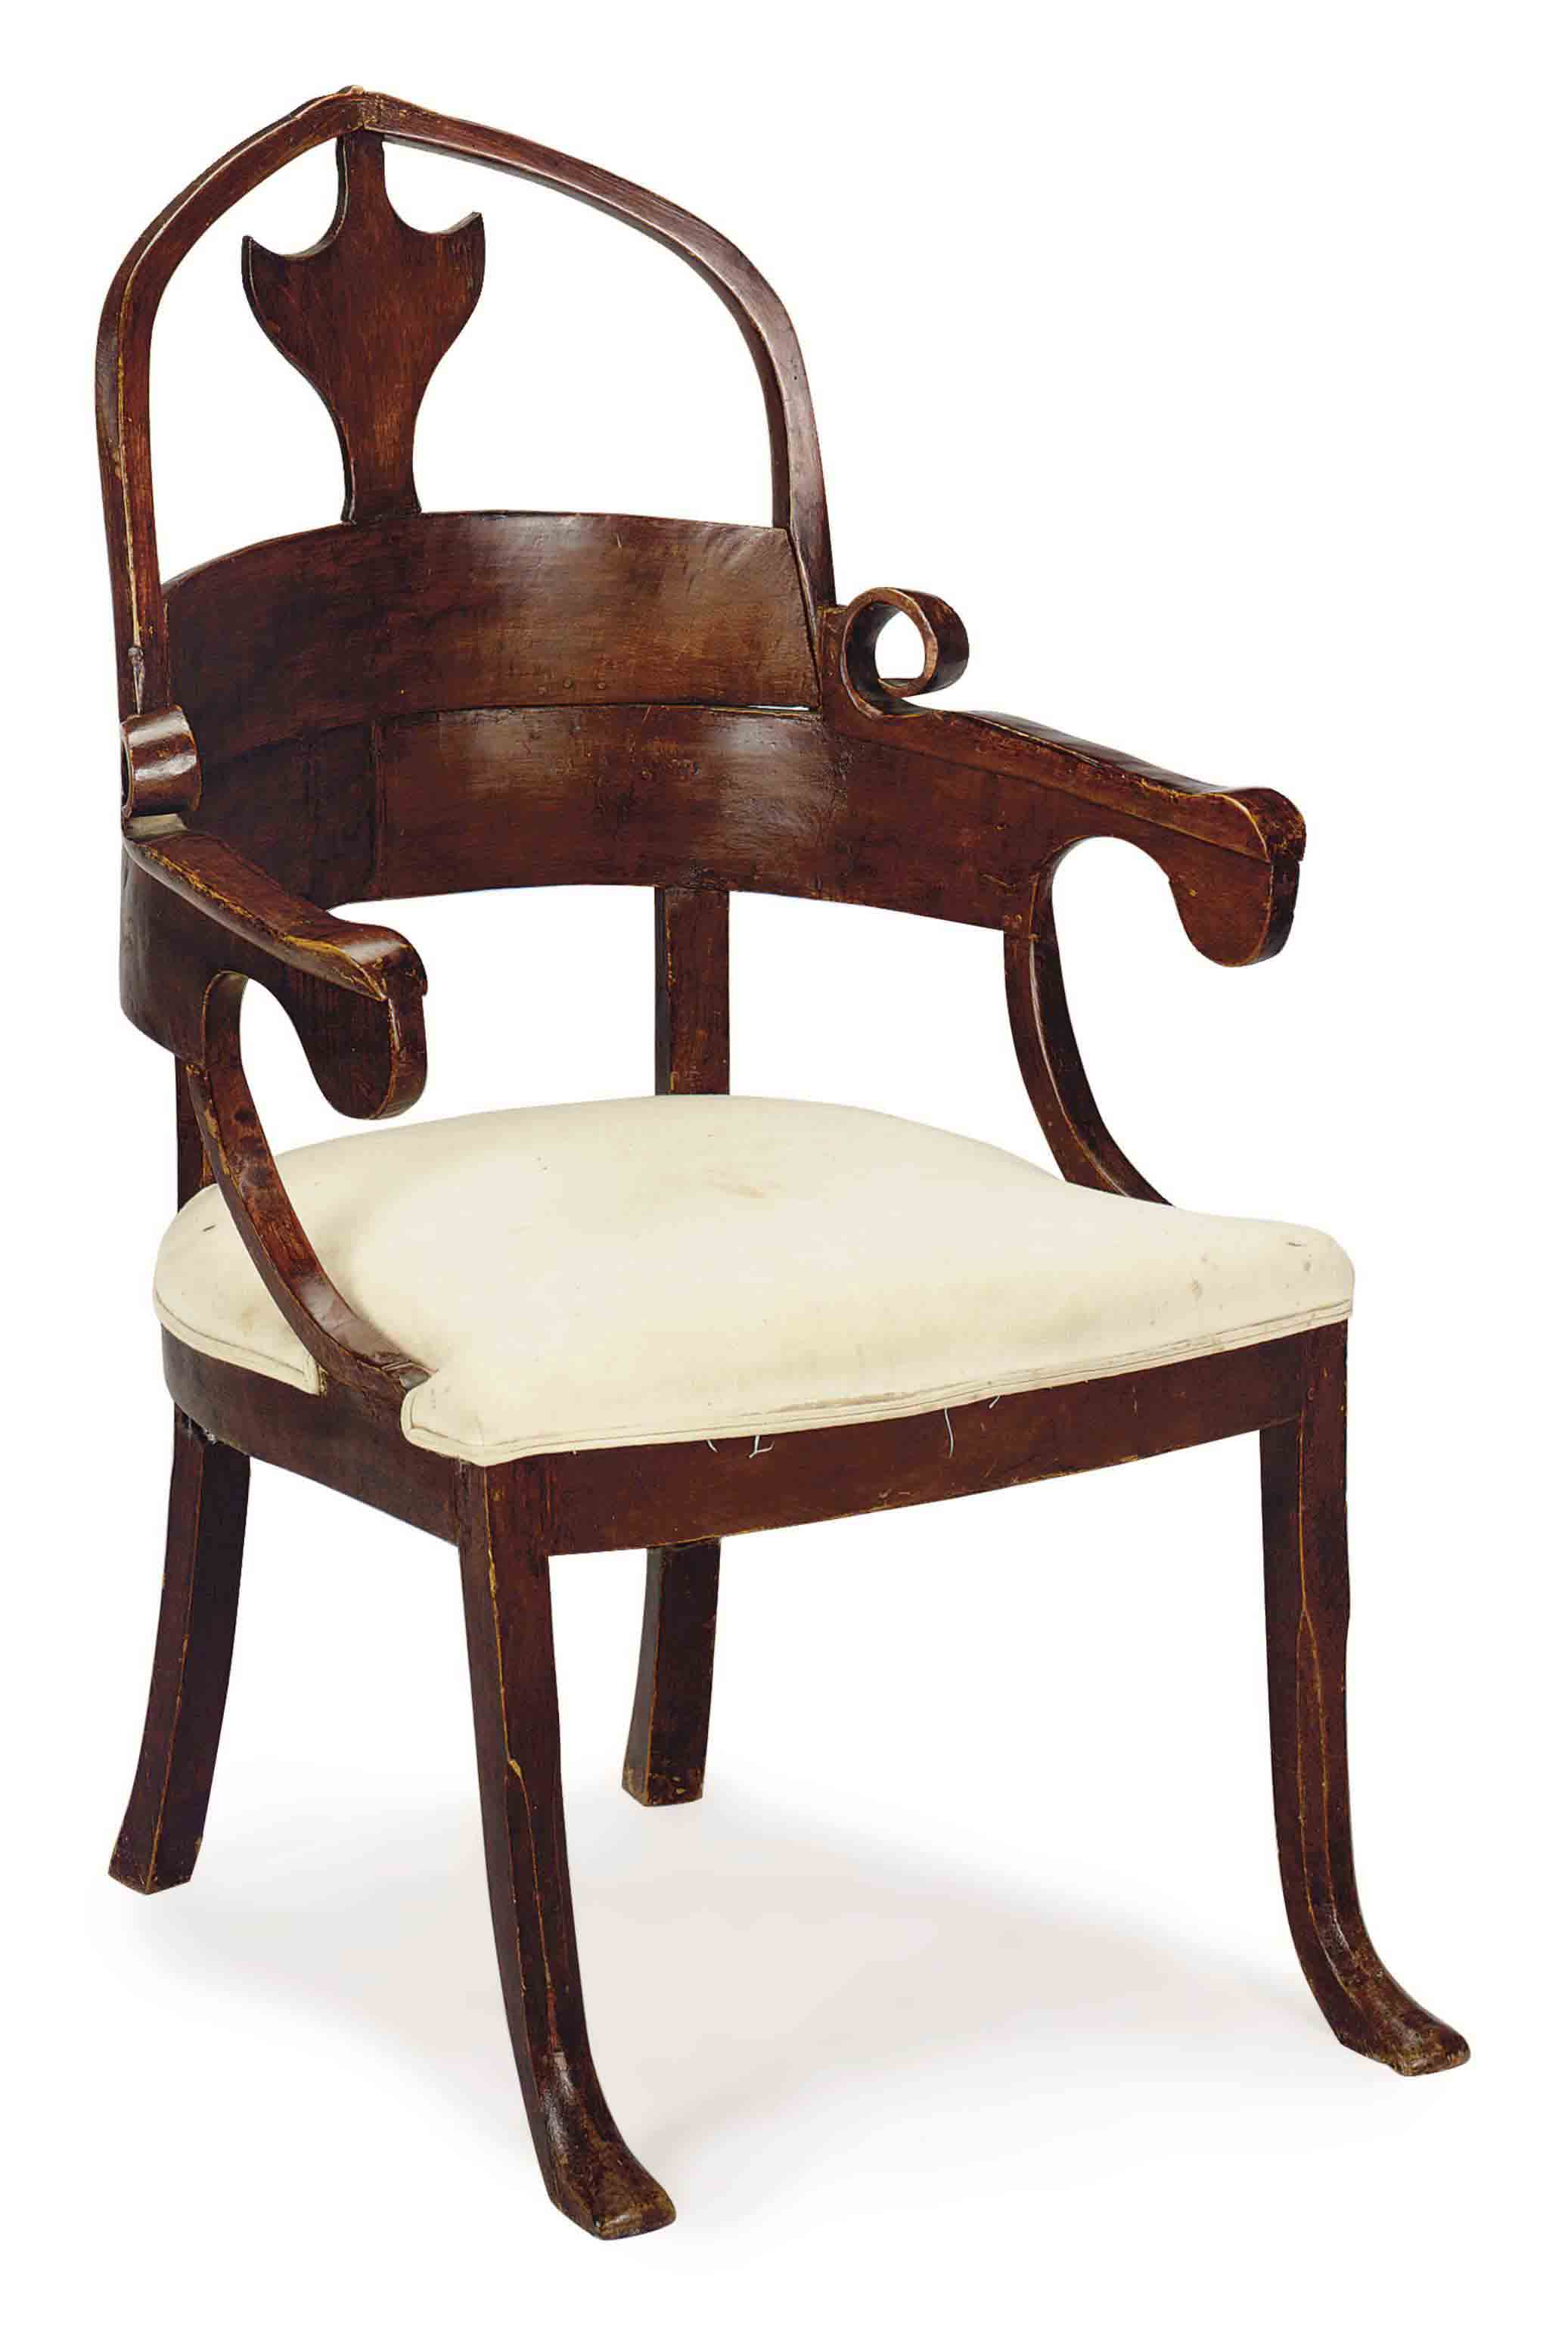 A CONTINENTAL WALNUT SHIELD-BACK ARMCHAIR,